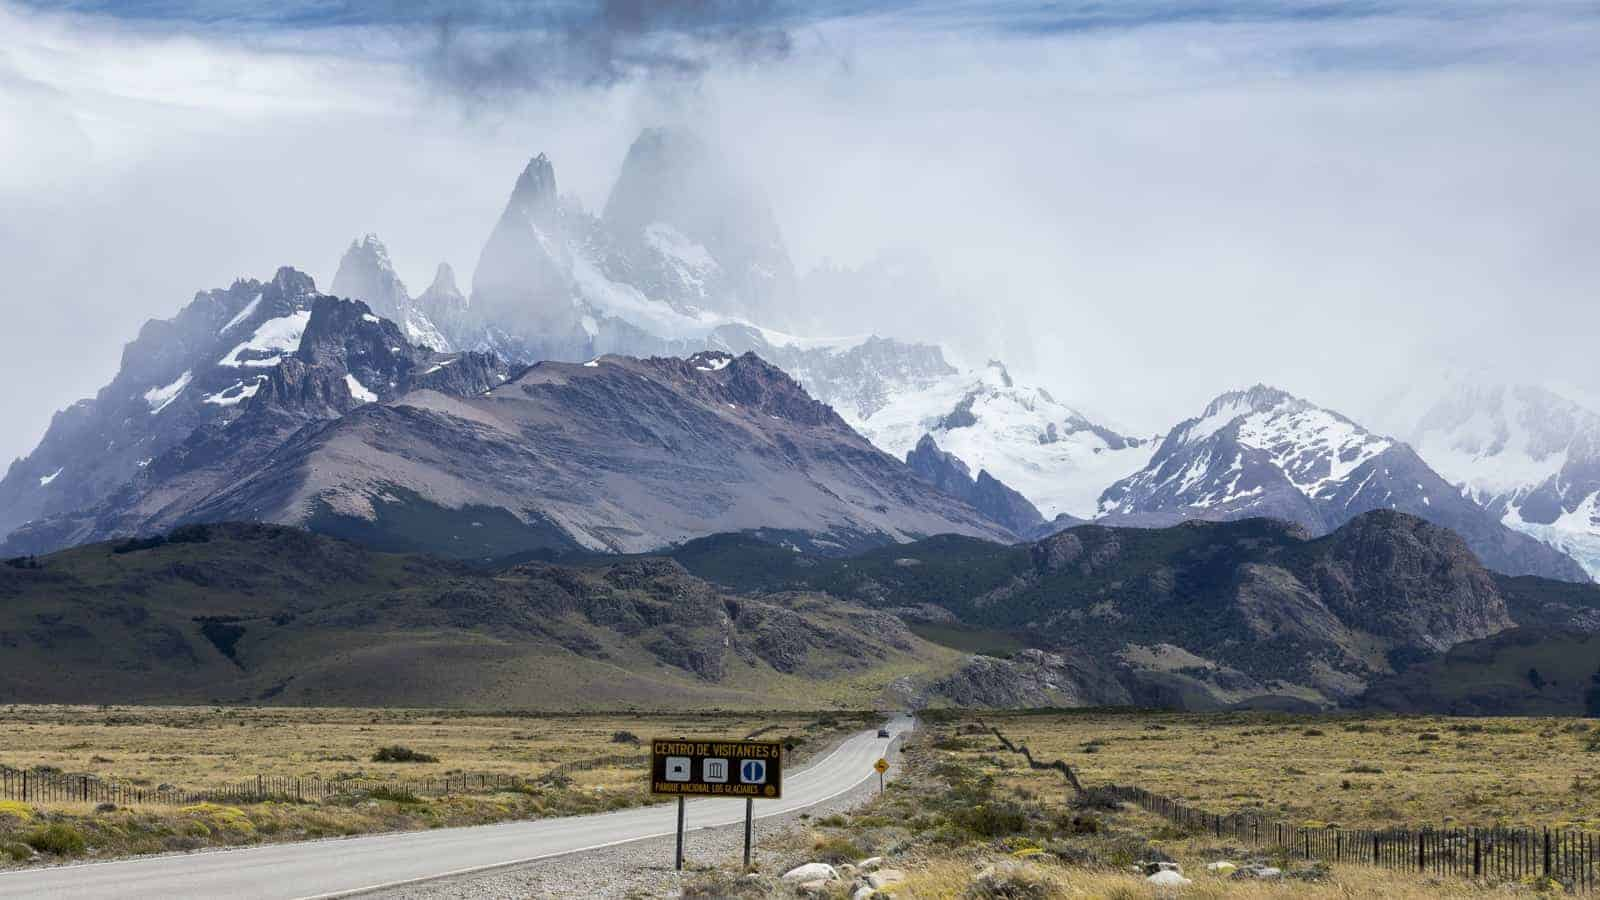 Close up experiences of glaciers, hiking in the Andes, exploring Argentina's lake district. Check out the highlights of Argentinian Patagonia